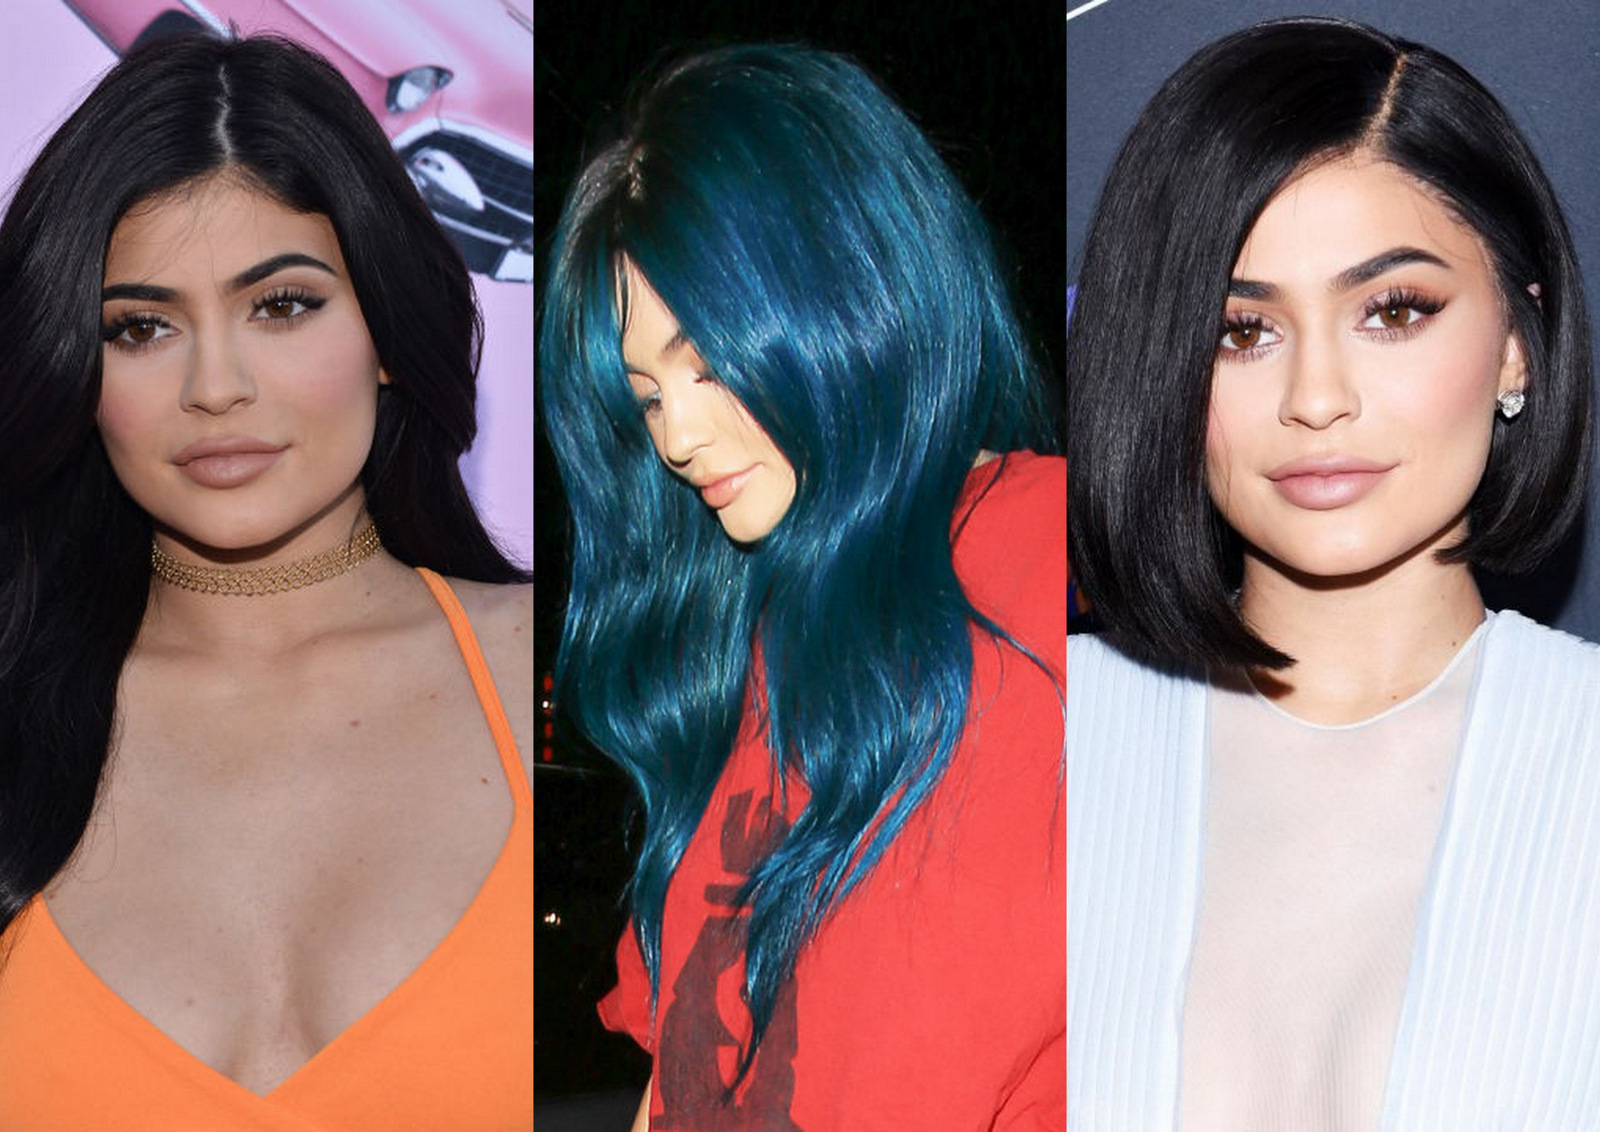 Kylie Jenner's hair for you to get inspired